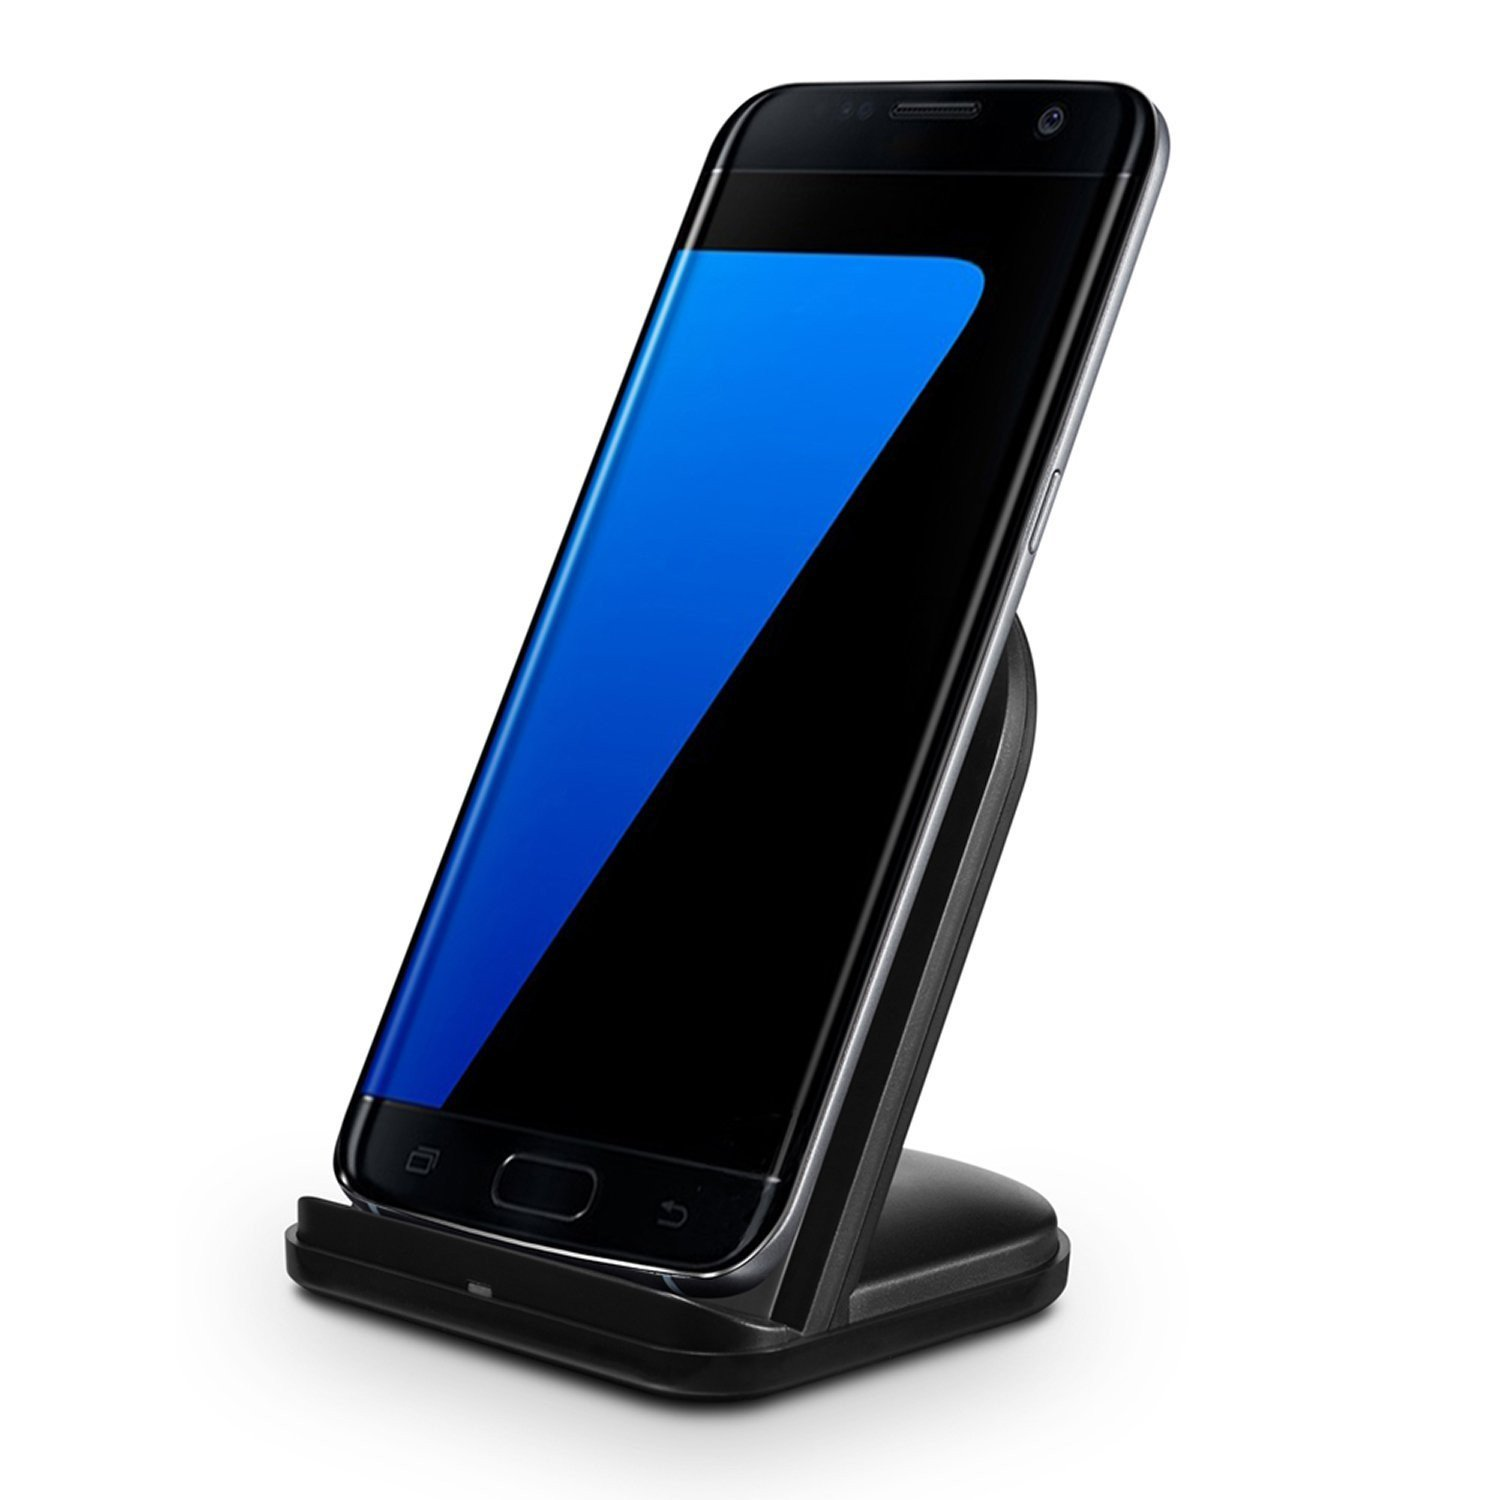 RNDs Fast Charge Wireless Charging Stand for Samsung Galaxy (S8, S8 Plus) (AC Adapter NOT included)